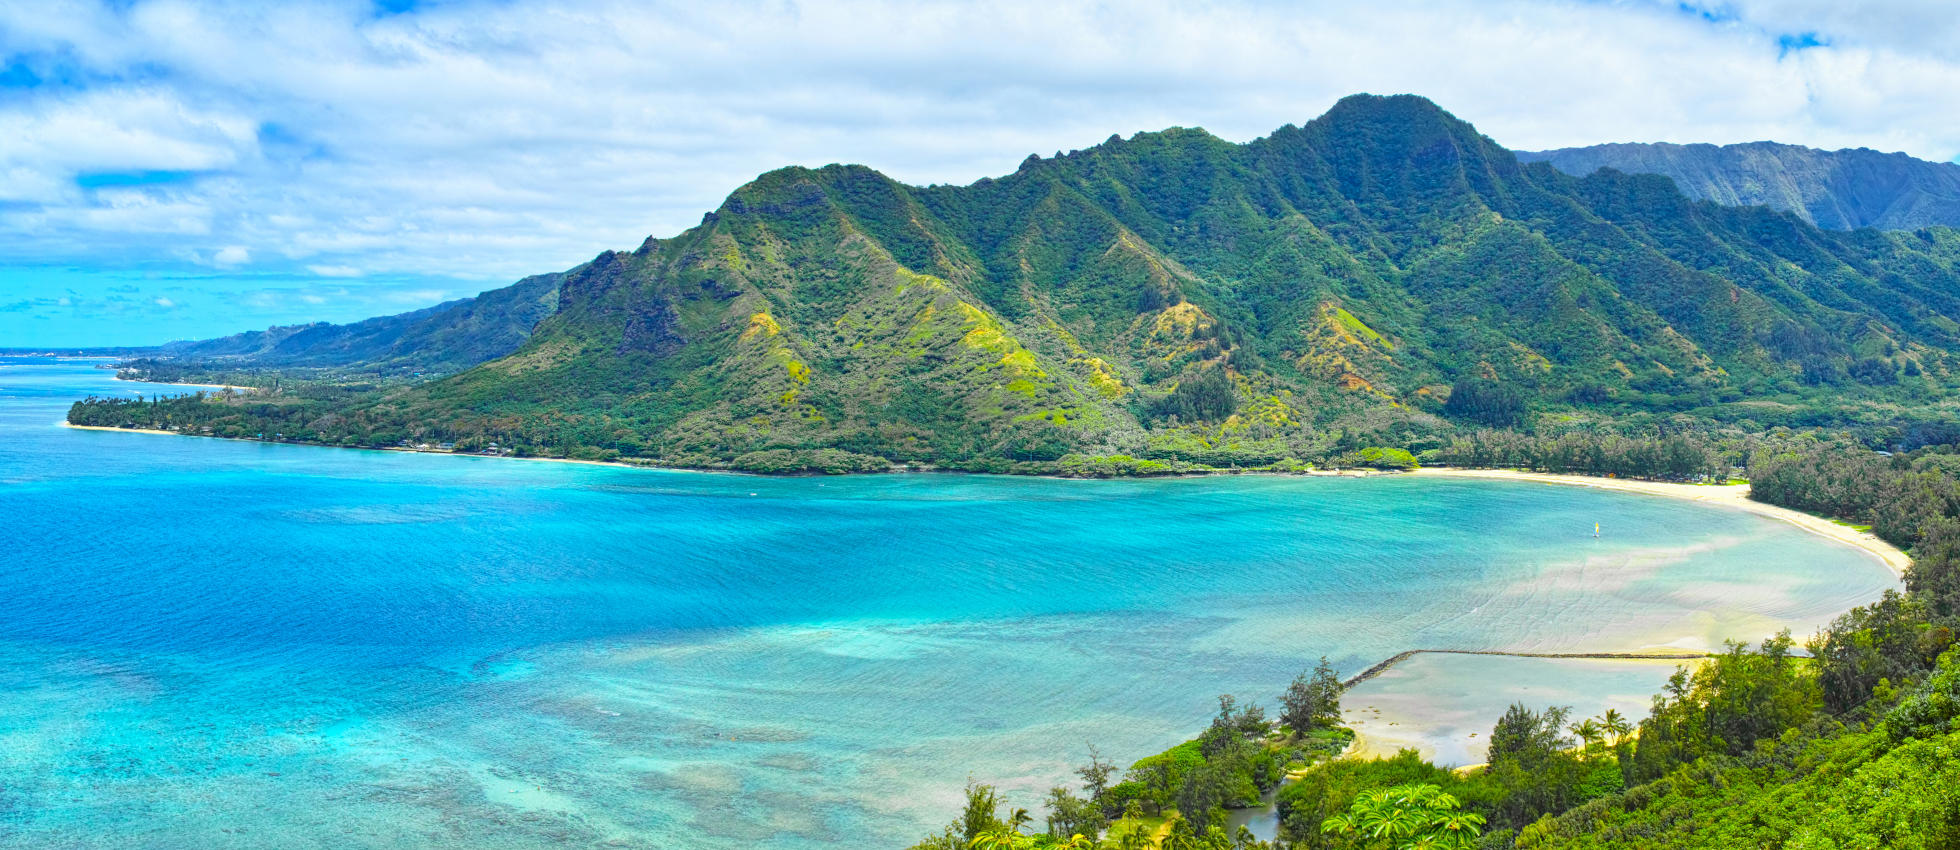 Gap Year Program - ARCC Gap | Hawaii: O'ahu, Kauai & the Big Island  2